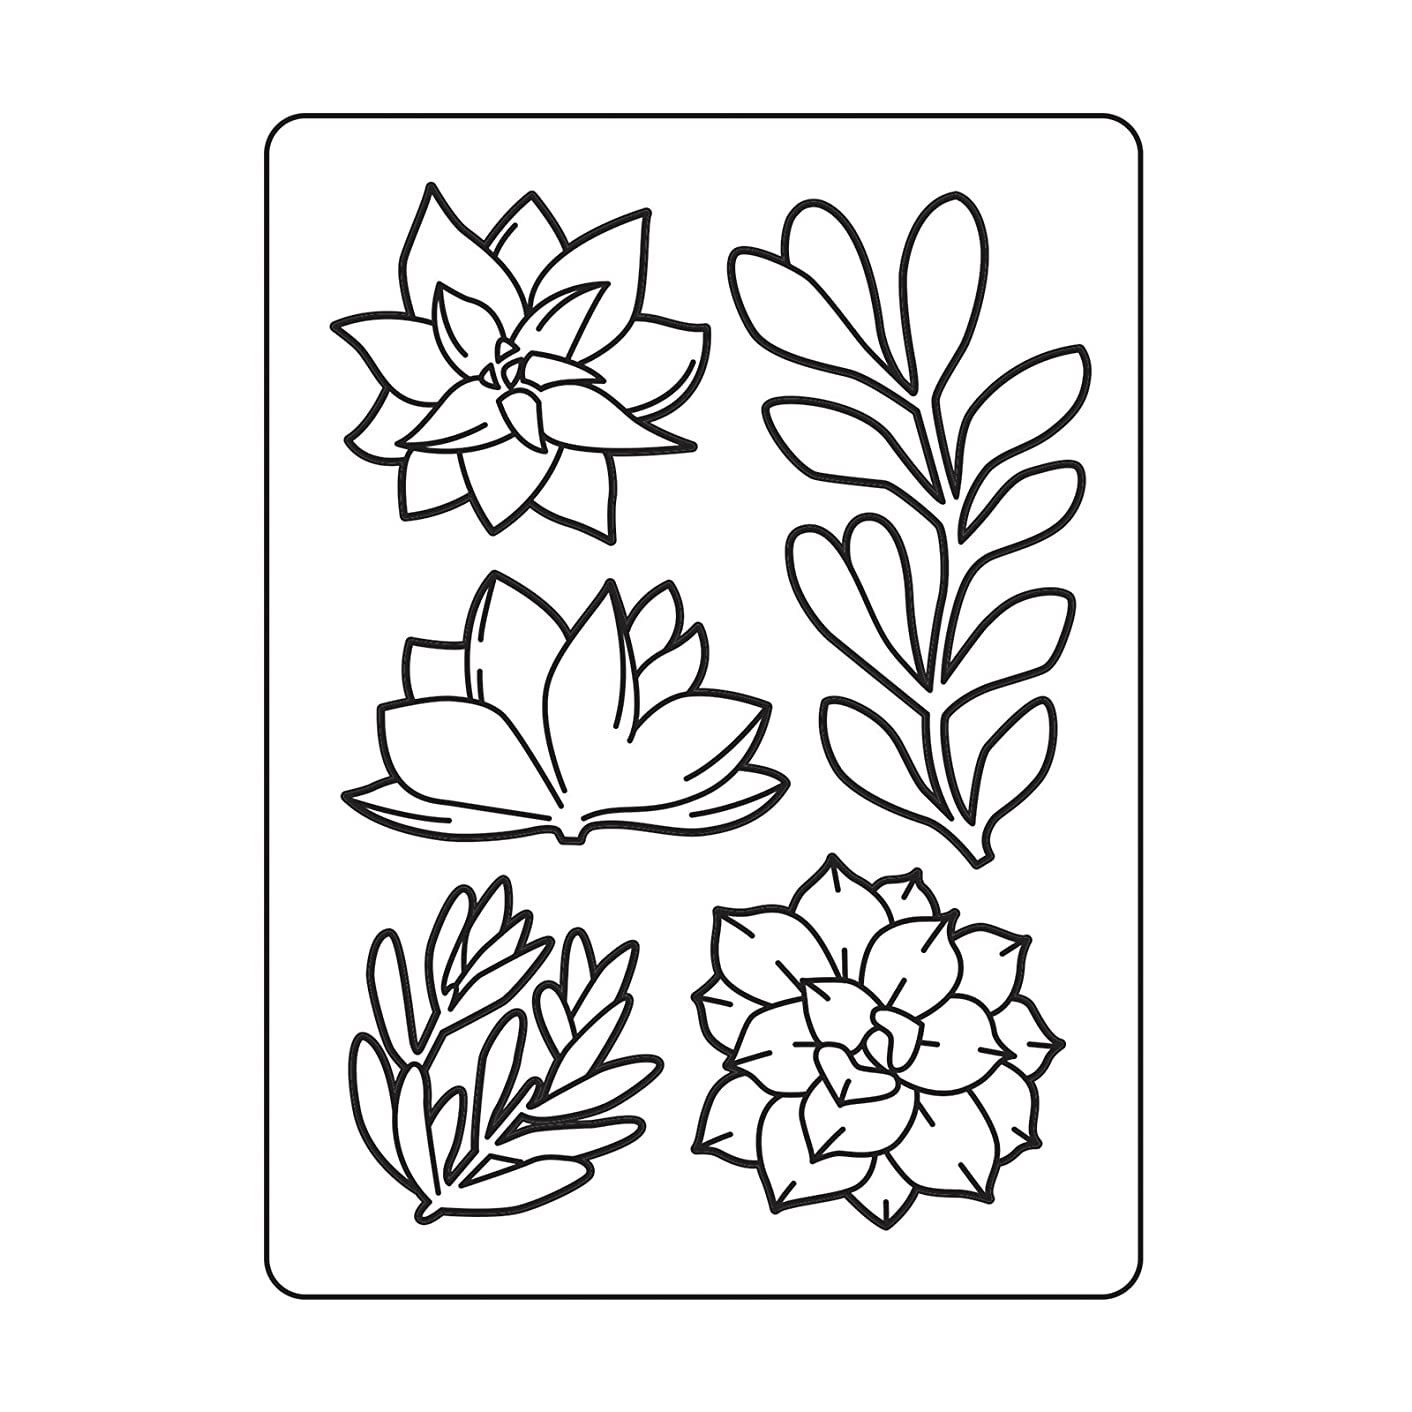 DARICE 30023122 Embossing Folders: Assorted Succulents, Multicolor